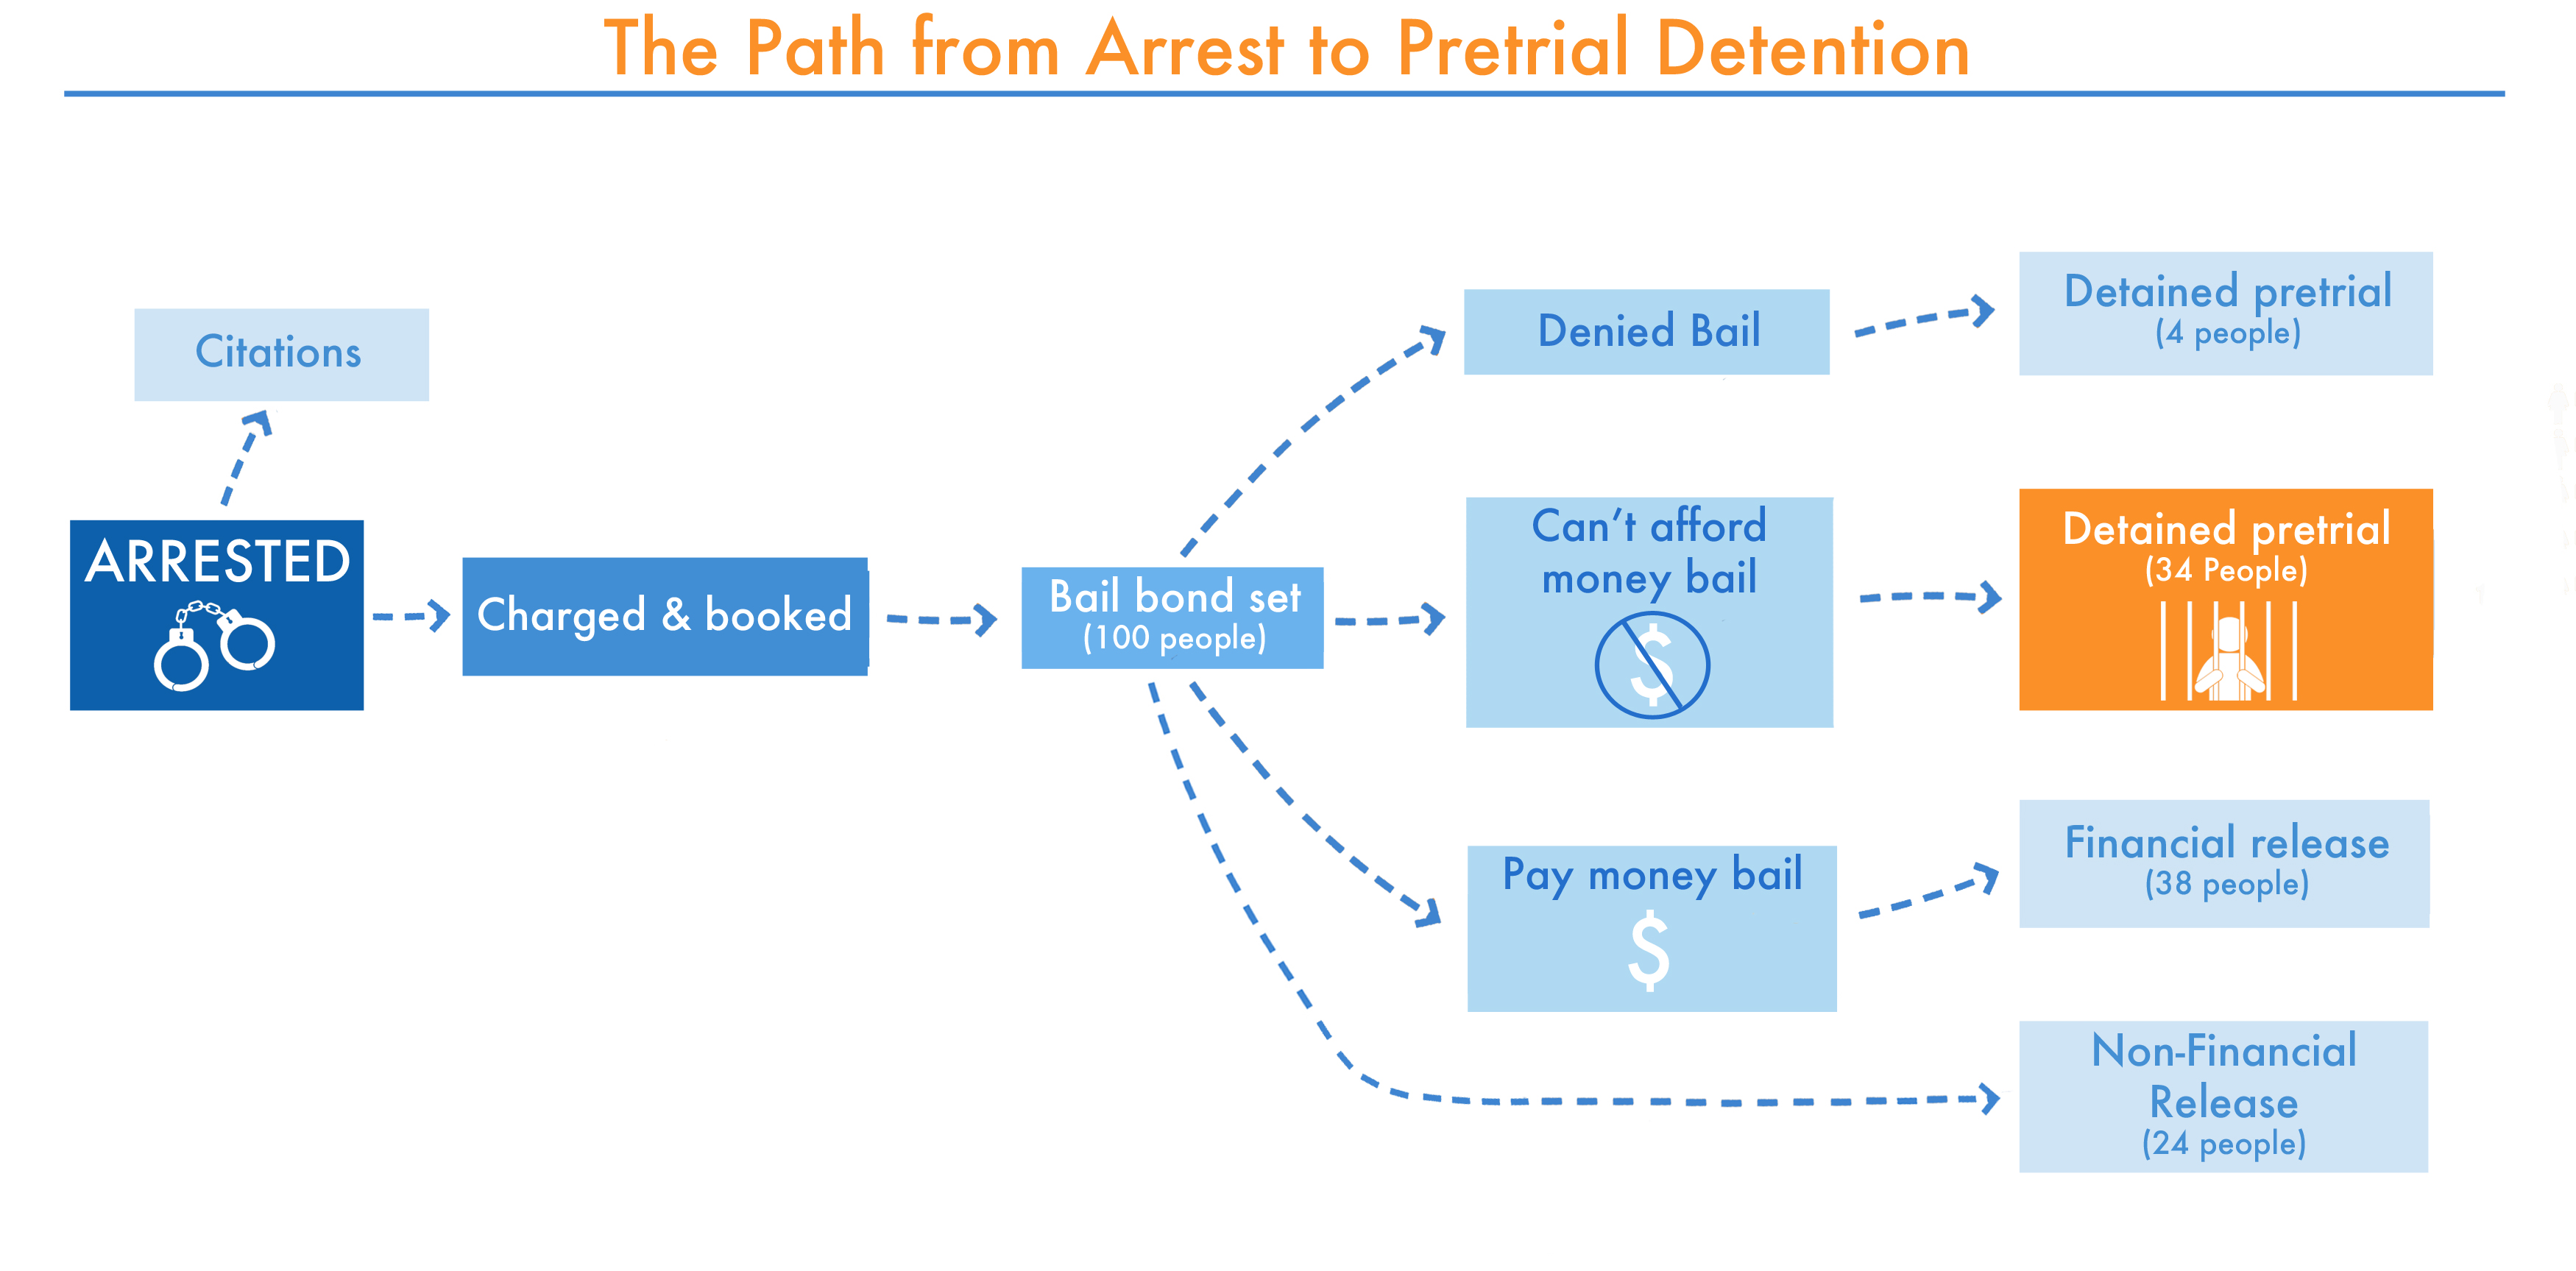 This chart illustrates the possible paths from arrest to pretrial detention. Thirty-four percent of felony defendants were detained pretrial for the inability to post money bail in 2009. This report focuses on this important population: those who are detained pretrial because they could not afford money bail.